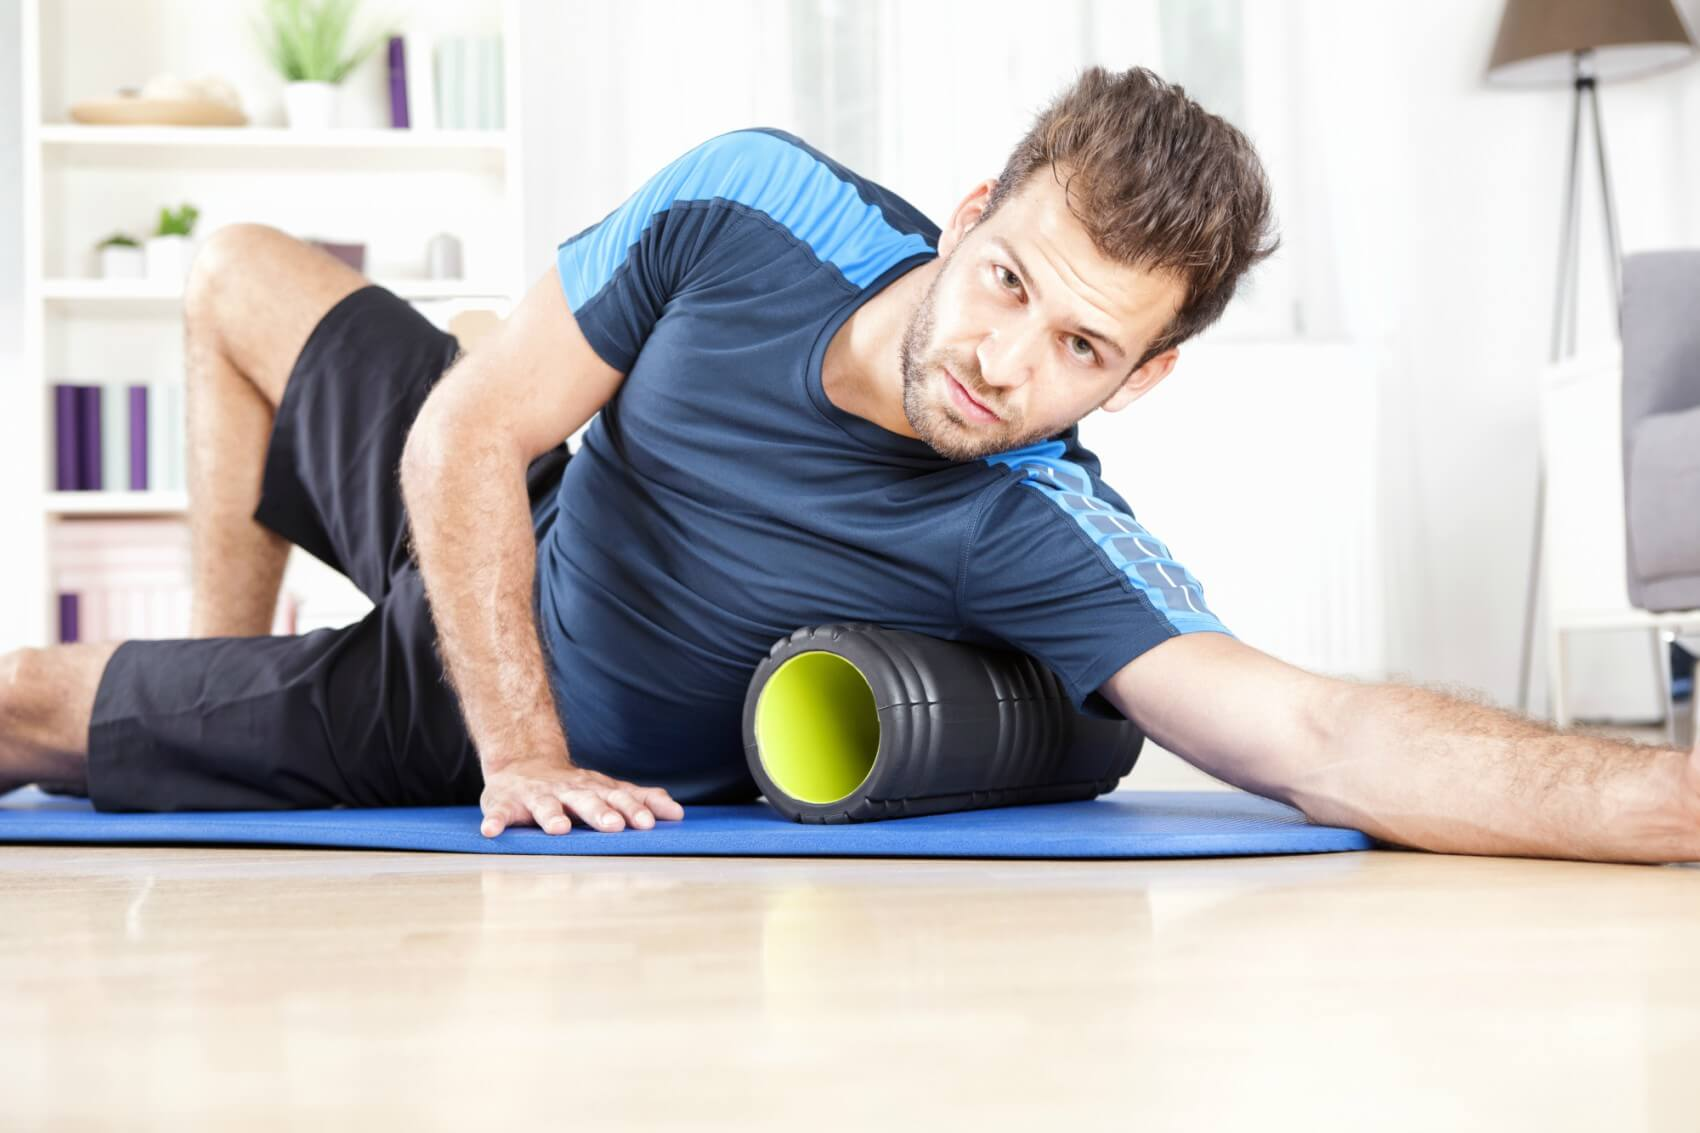 5 Foam Rolling Benefits That Will Make You Want to Roll Tonight